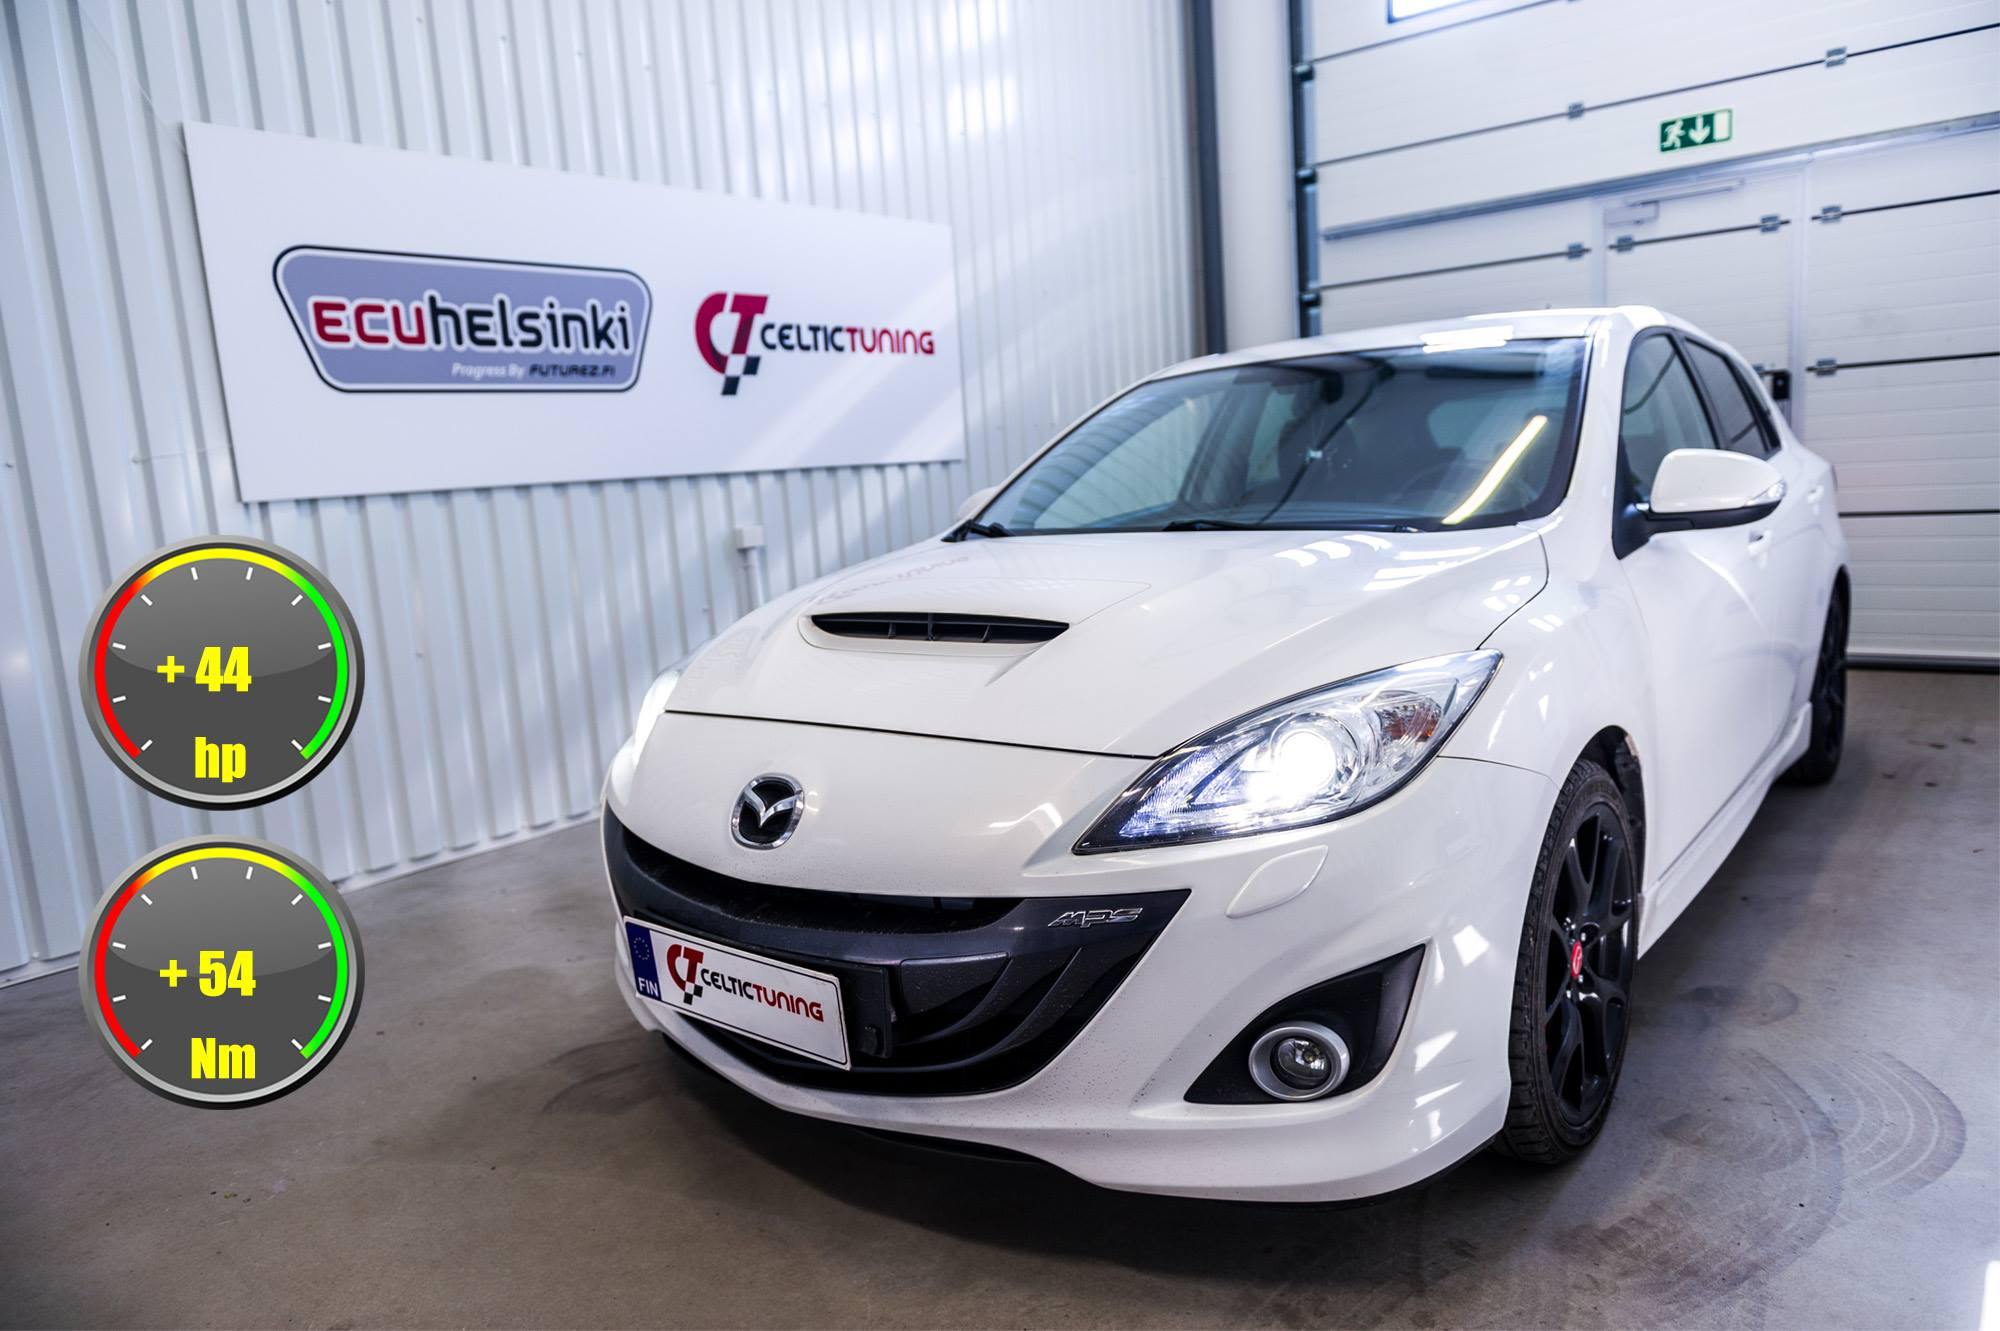 Mazda 3 MPS lastutus celtic tuning